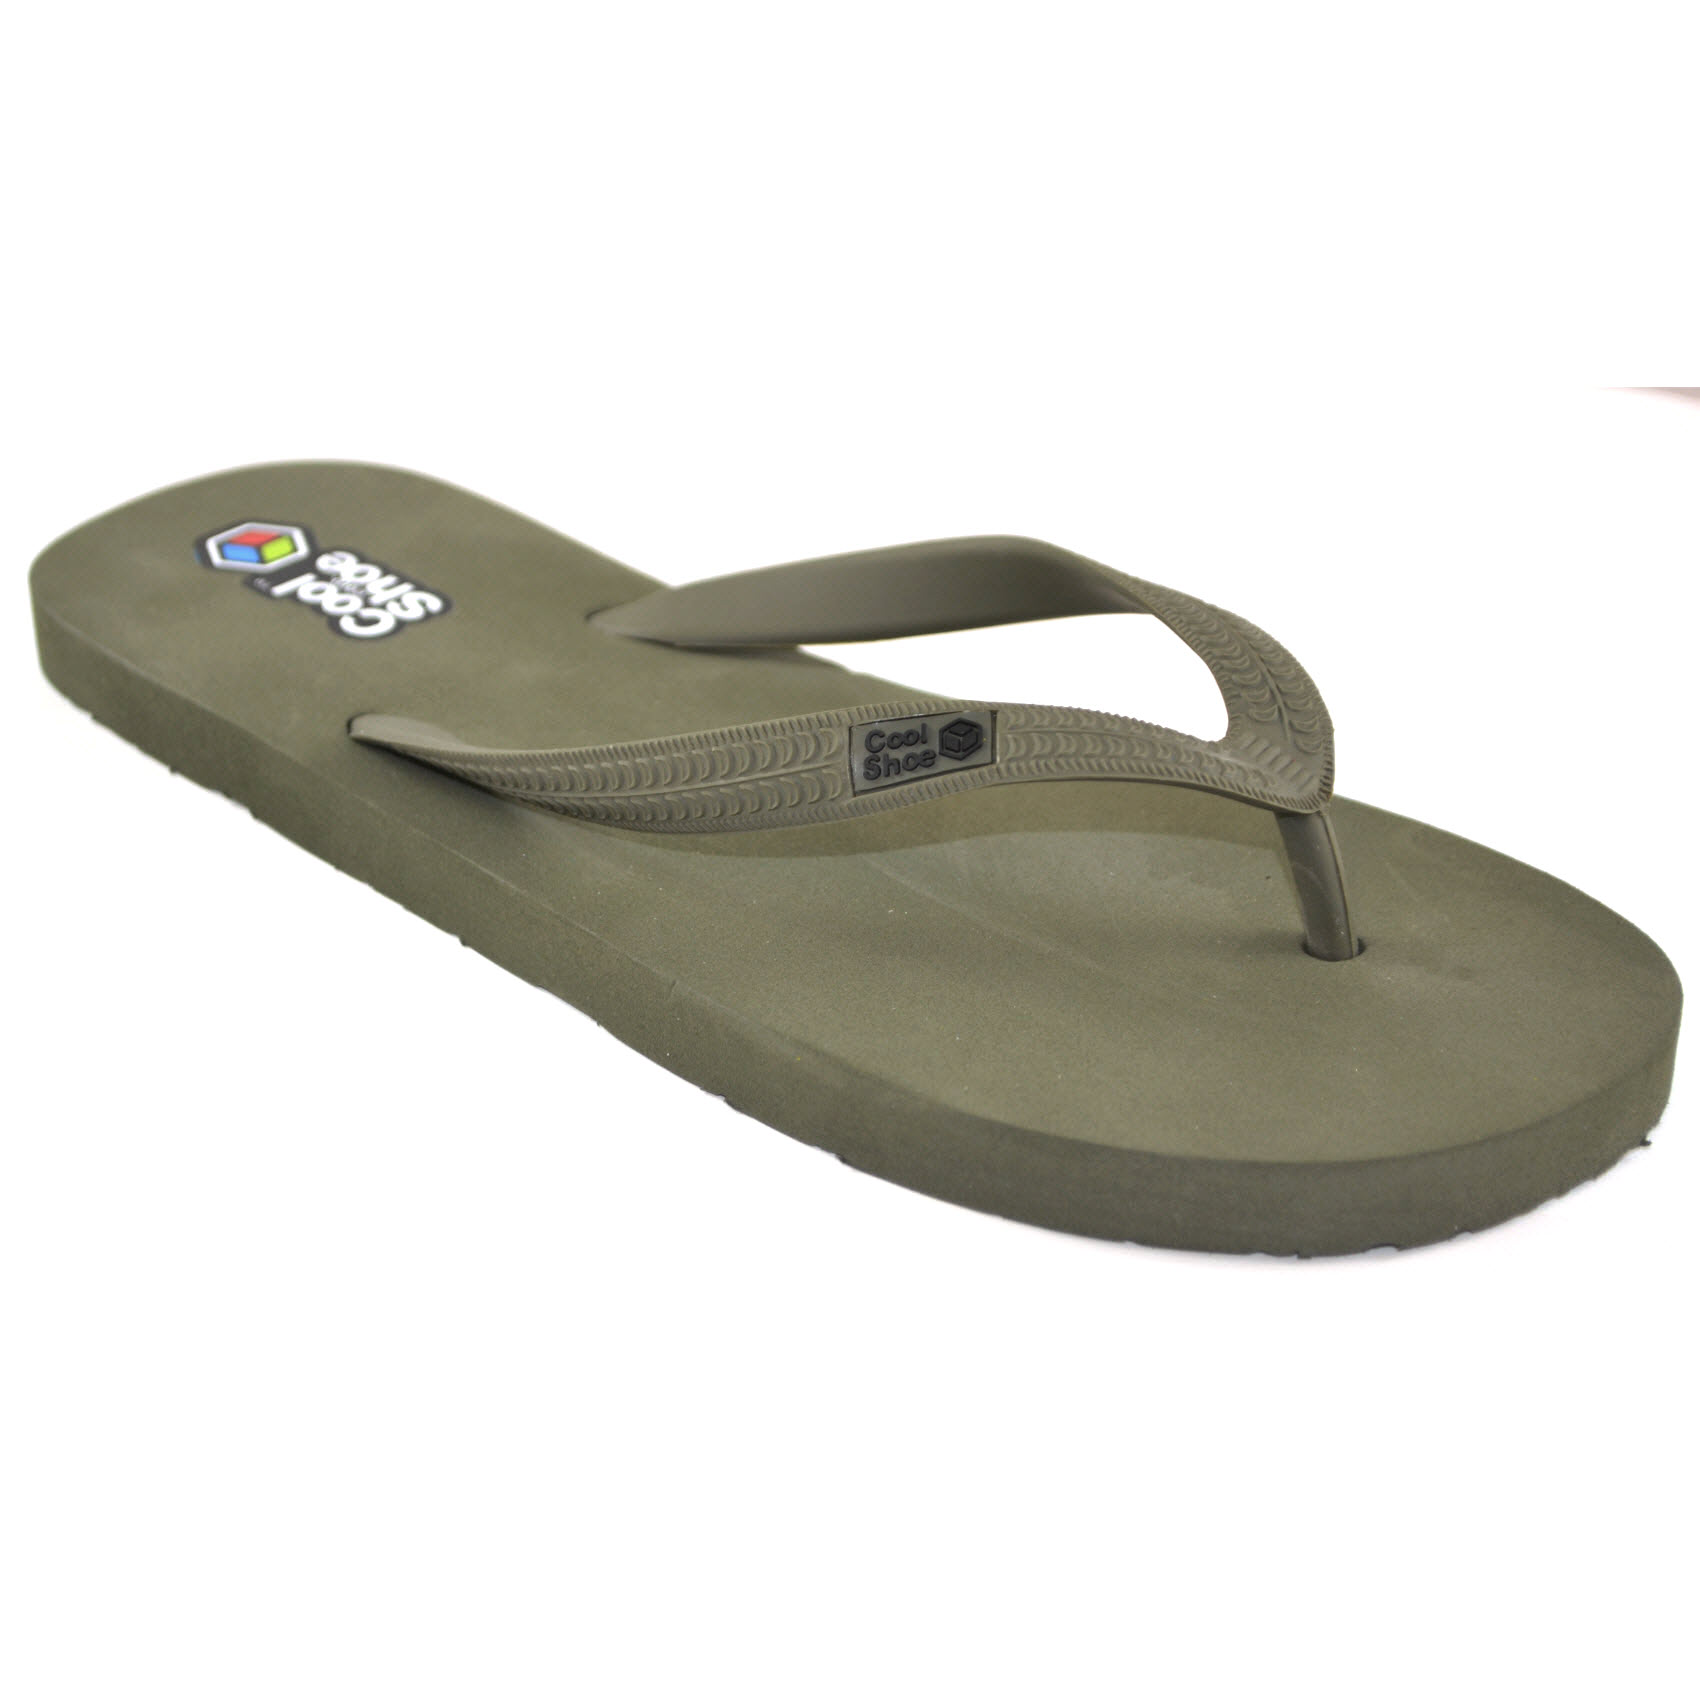 cool shoe whole mens rubber beach flip flop sandals ebay. Black Bedroom Furniture Sets. Home Design Ideas